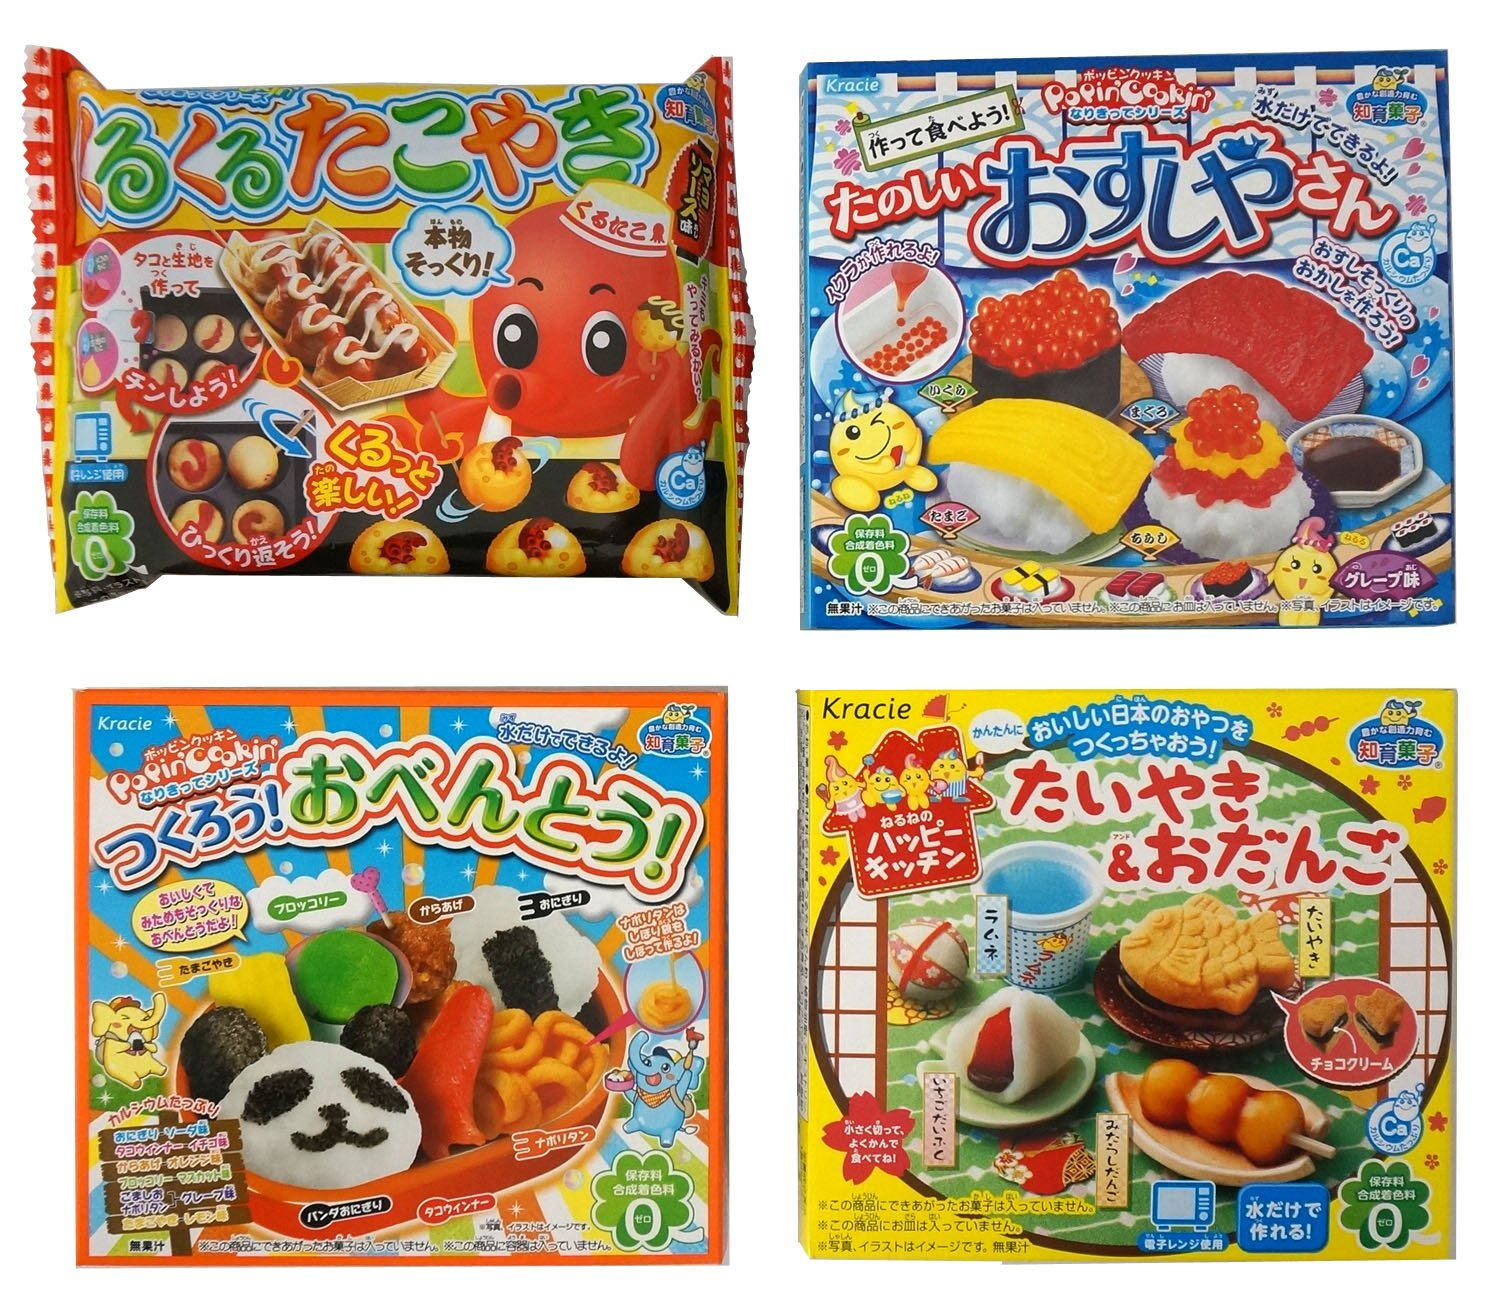 Assortment of 4 Kracie Popin Cookin & Happy Kitchen Kits ''NT6000248'' 4 Packs of DIY Candy Kit Ninjapo Package